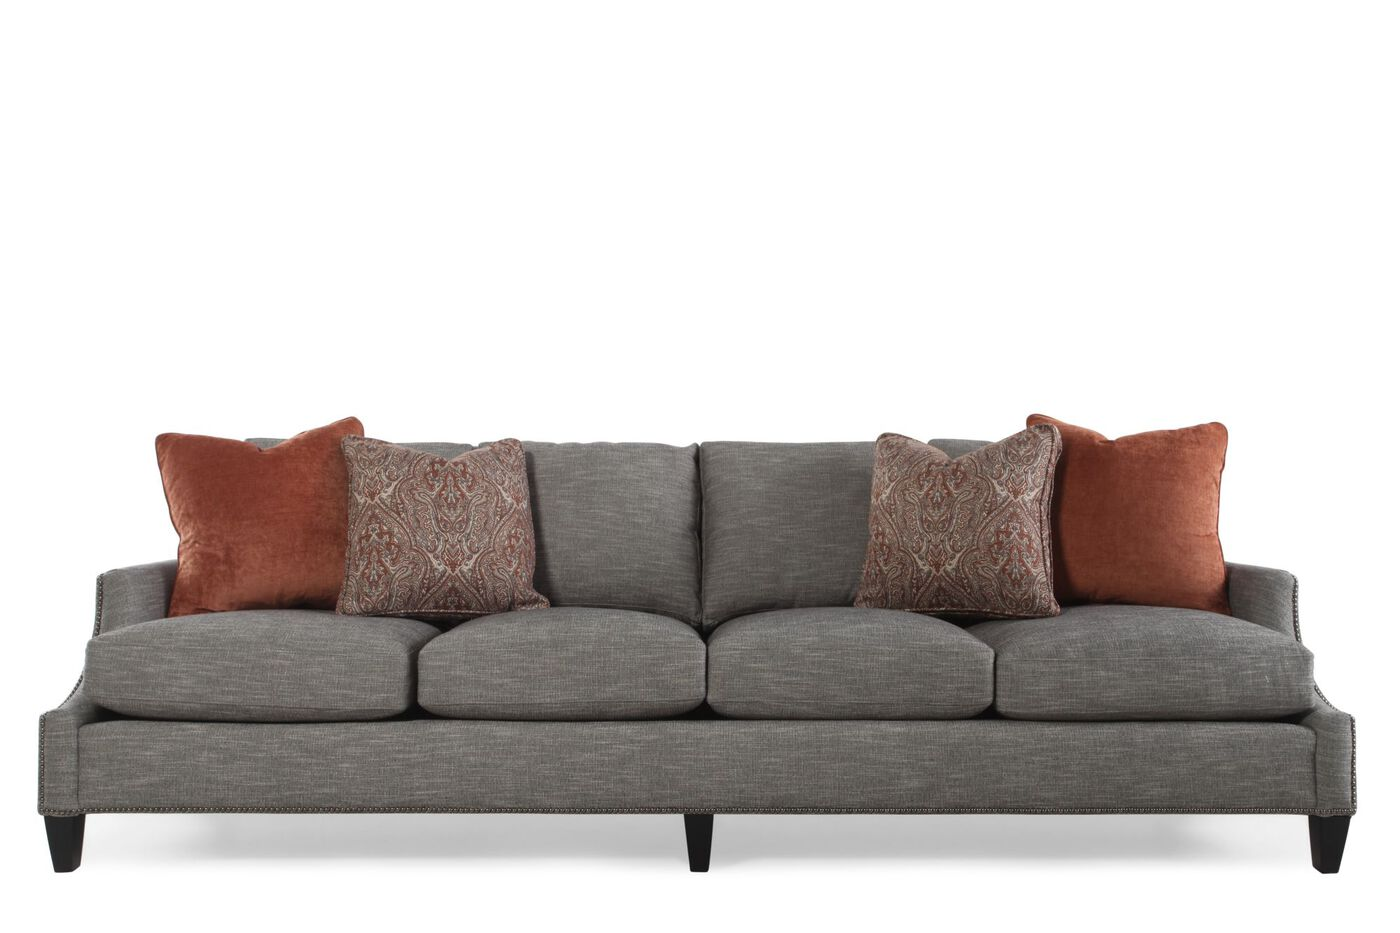 Bernhardt crawford sofa mathis brothers furniture for Where to buy bernhardt furniture online